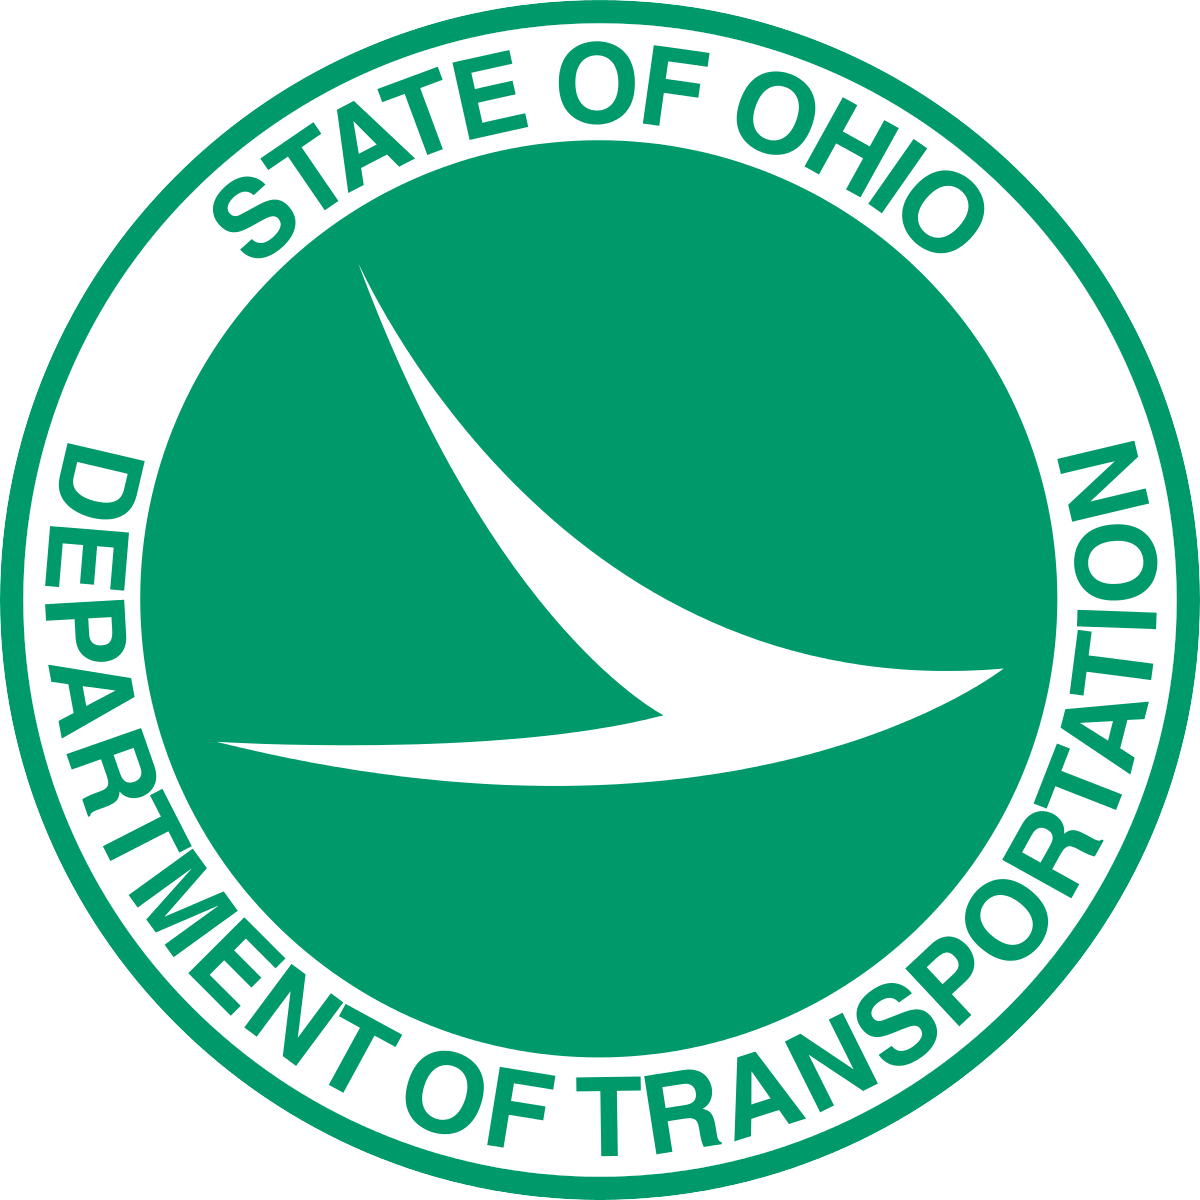 Dept. of transportation logo